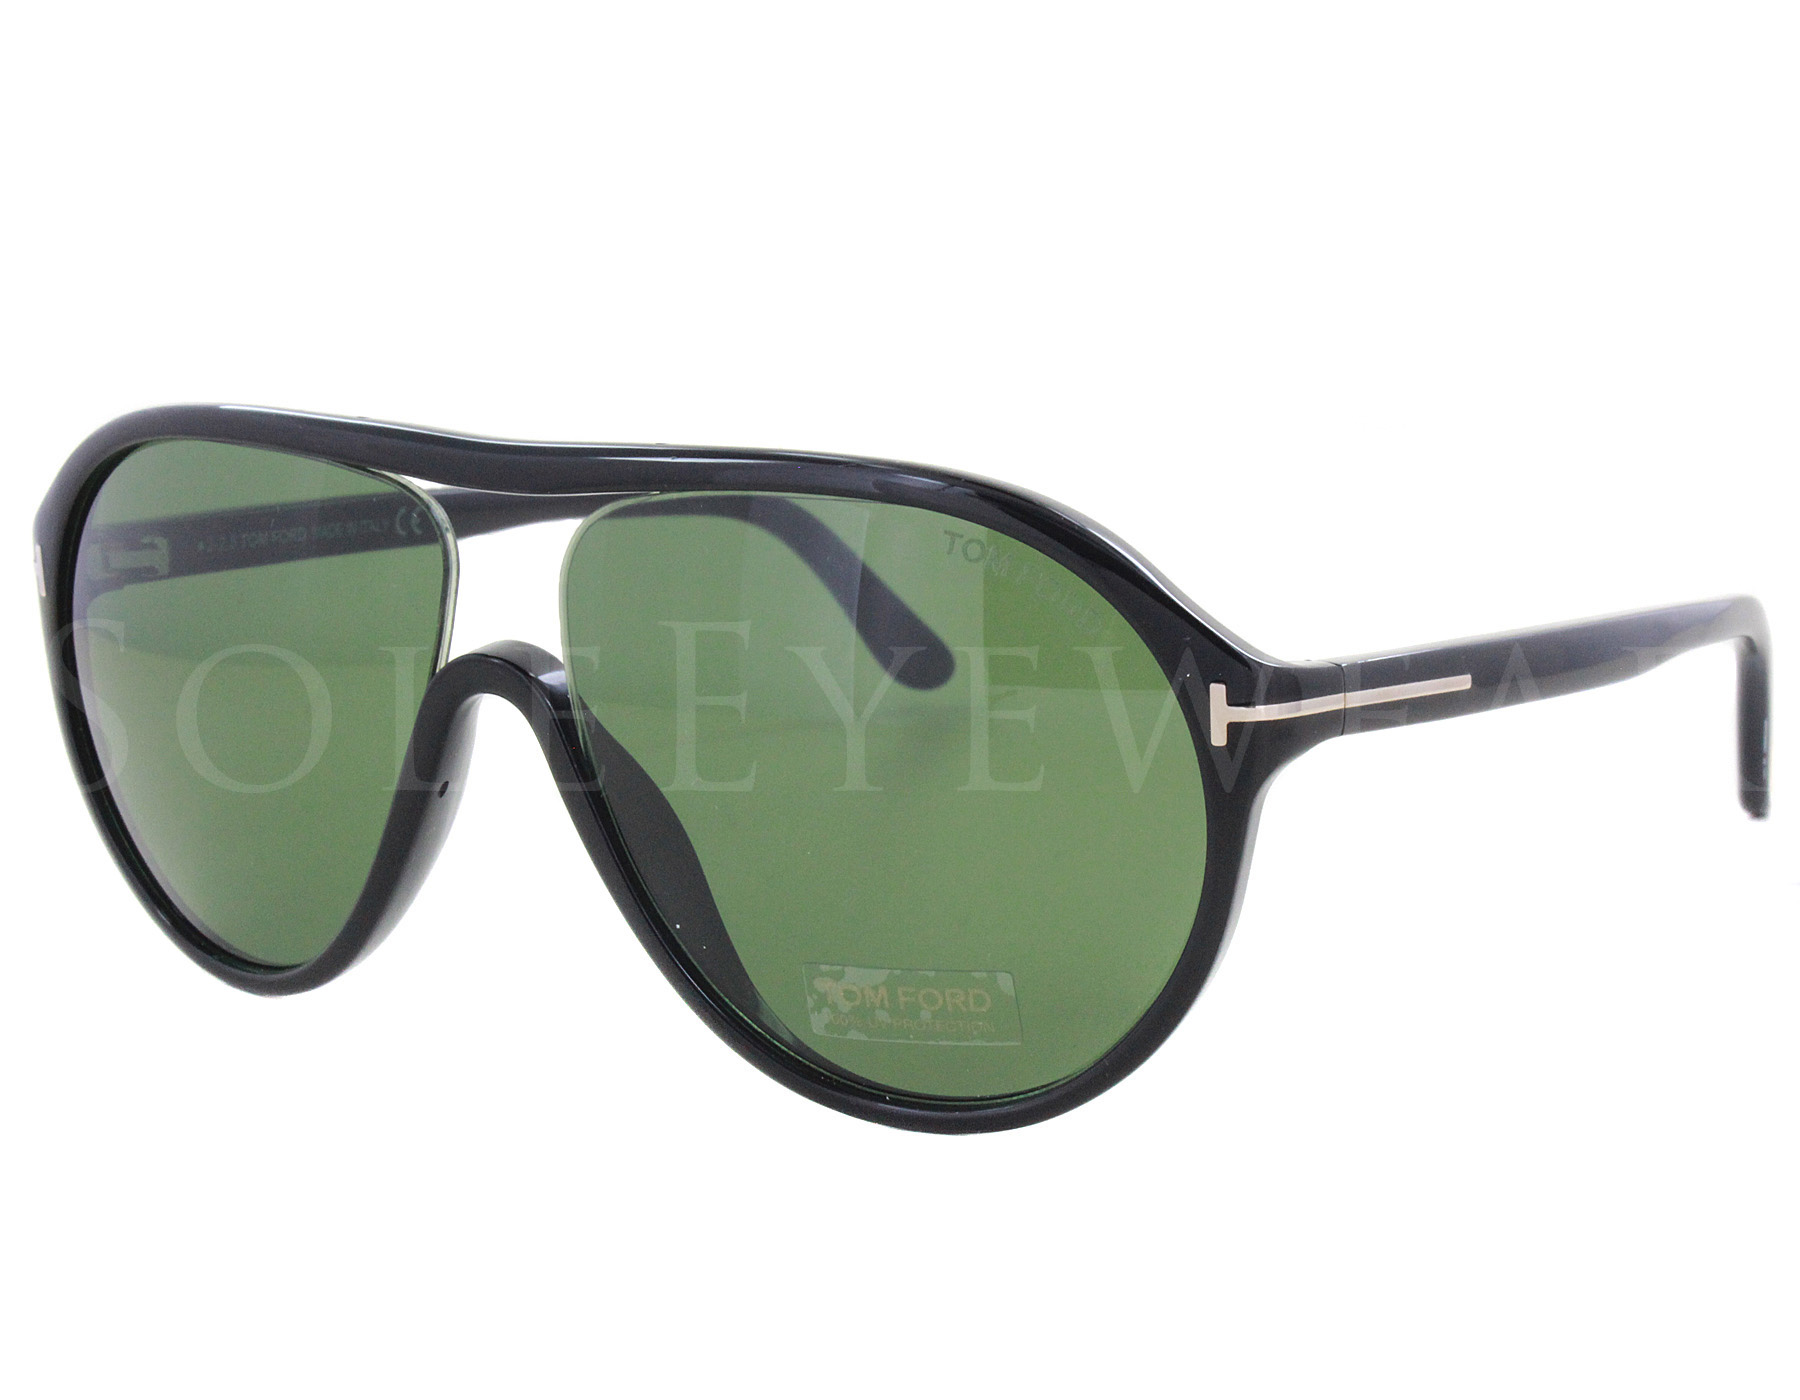 8fcc89b1c68 Details about NEW Tom Ford FT0443-01N TF 443 Edison Shiny Black   Green  Sunglasses (NO CASE)